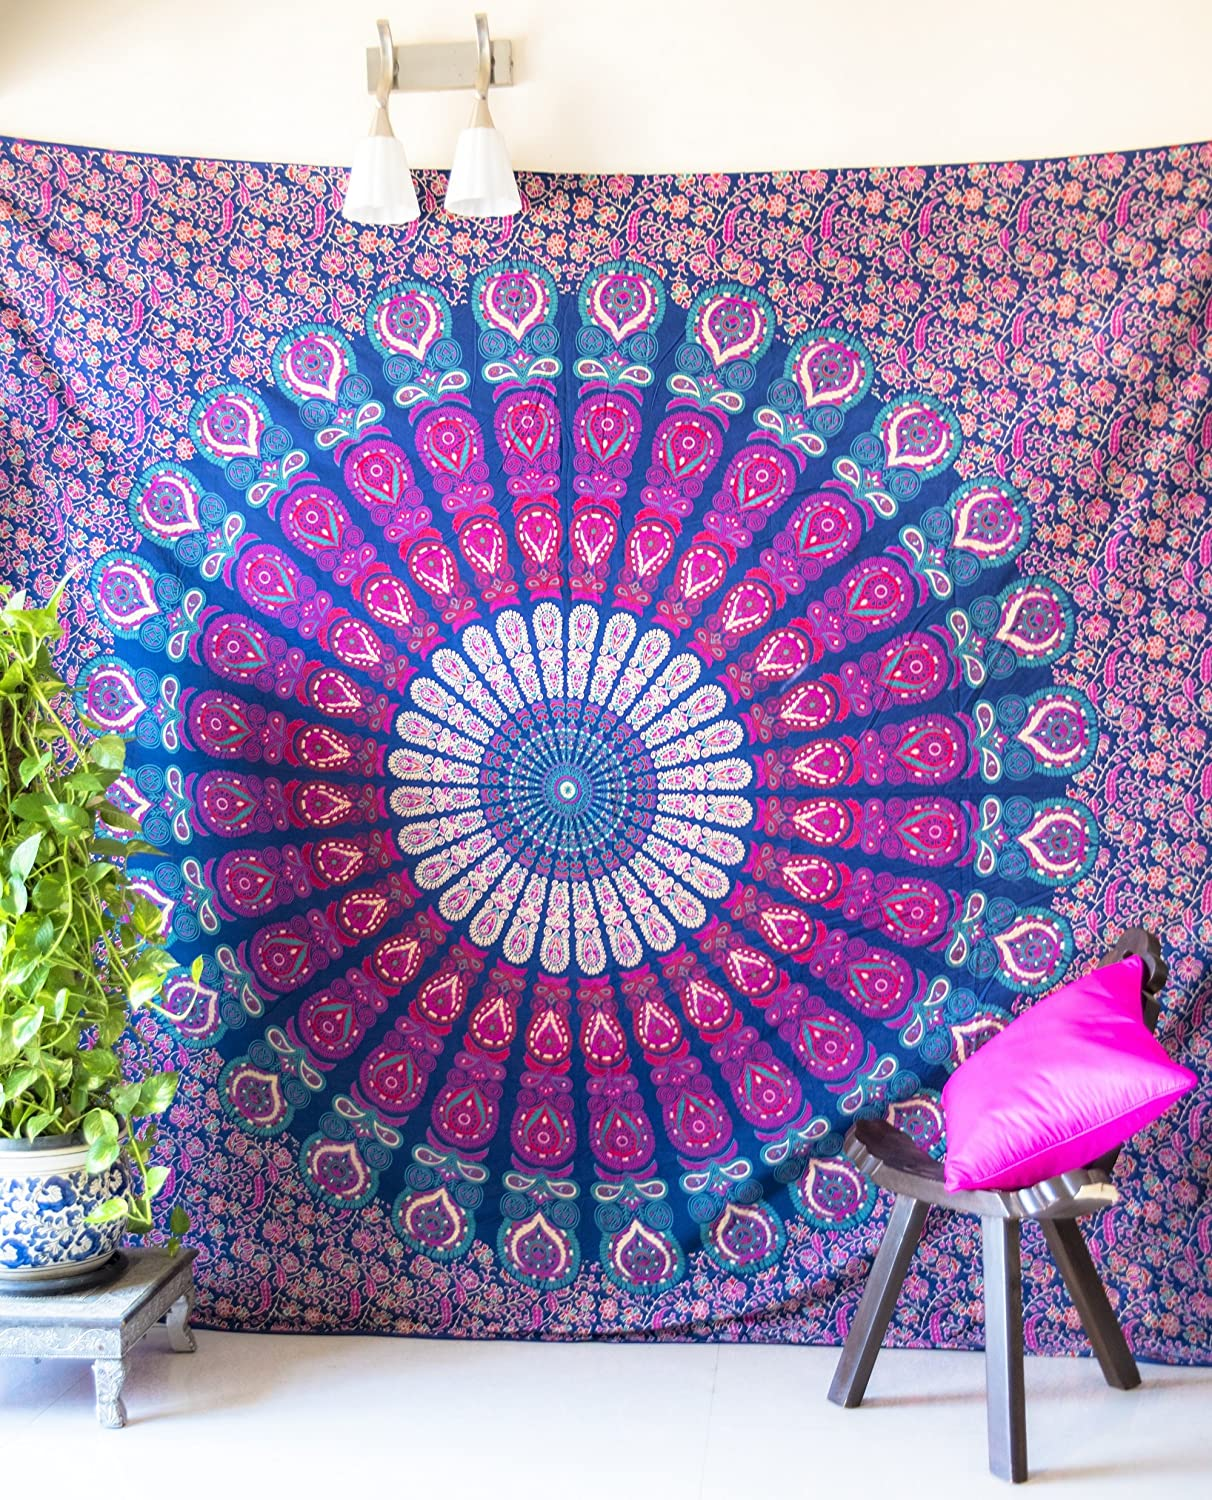 bedroom tapestry. Amazon com  Folkulture Peacock Parade Bohemian Tapestry Hippie Wall Hanging Indian Mandala Bedspread for Bedroom Blue Bedding Blanket or College Dorm Room